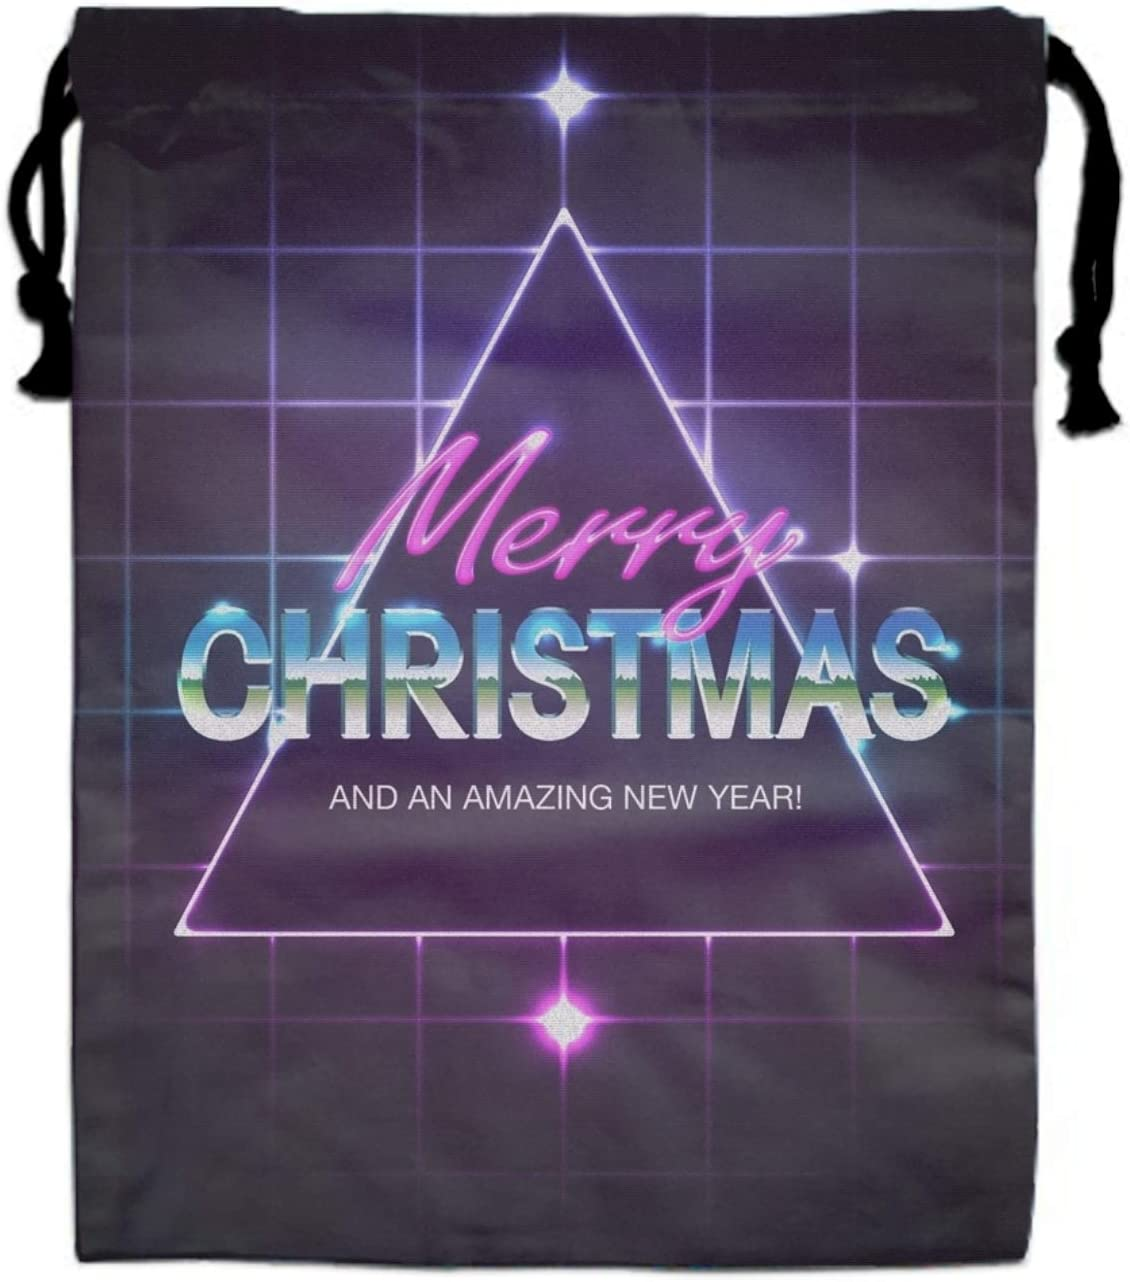 Packing Organiser Christmas Drawstring Bags for Travel Luggage Bag Toiletry Pouch Christmas